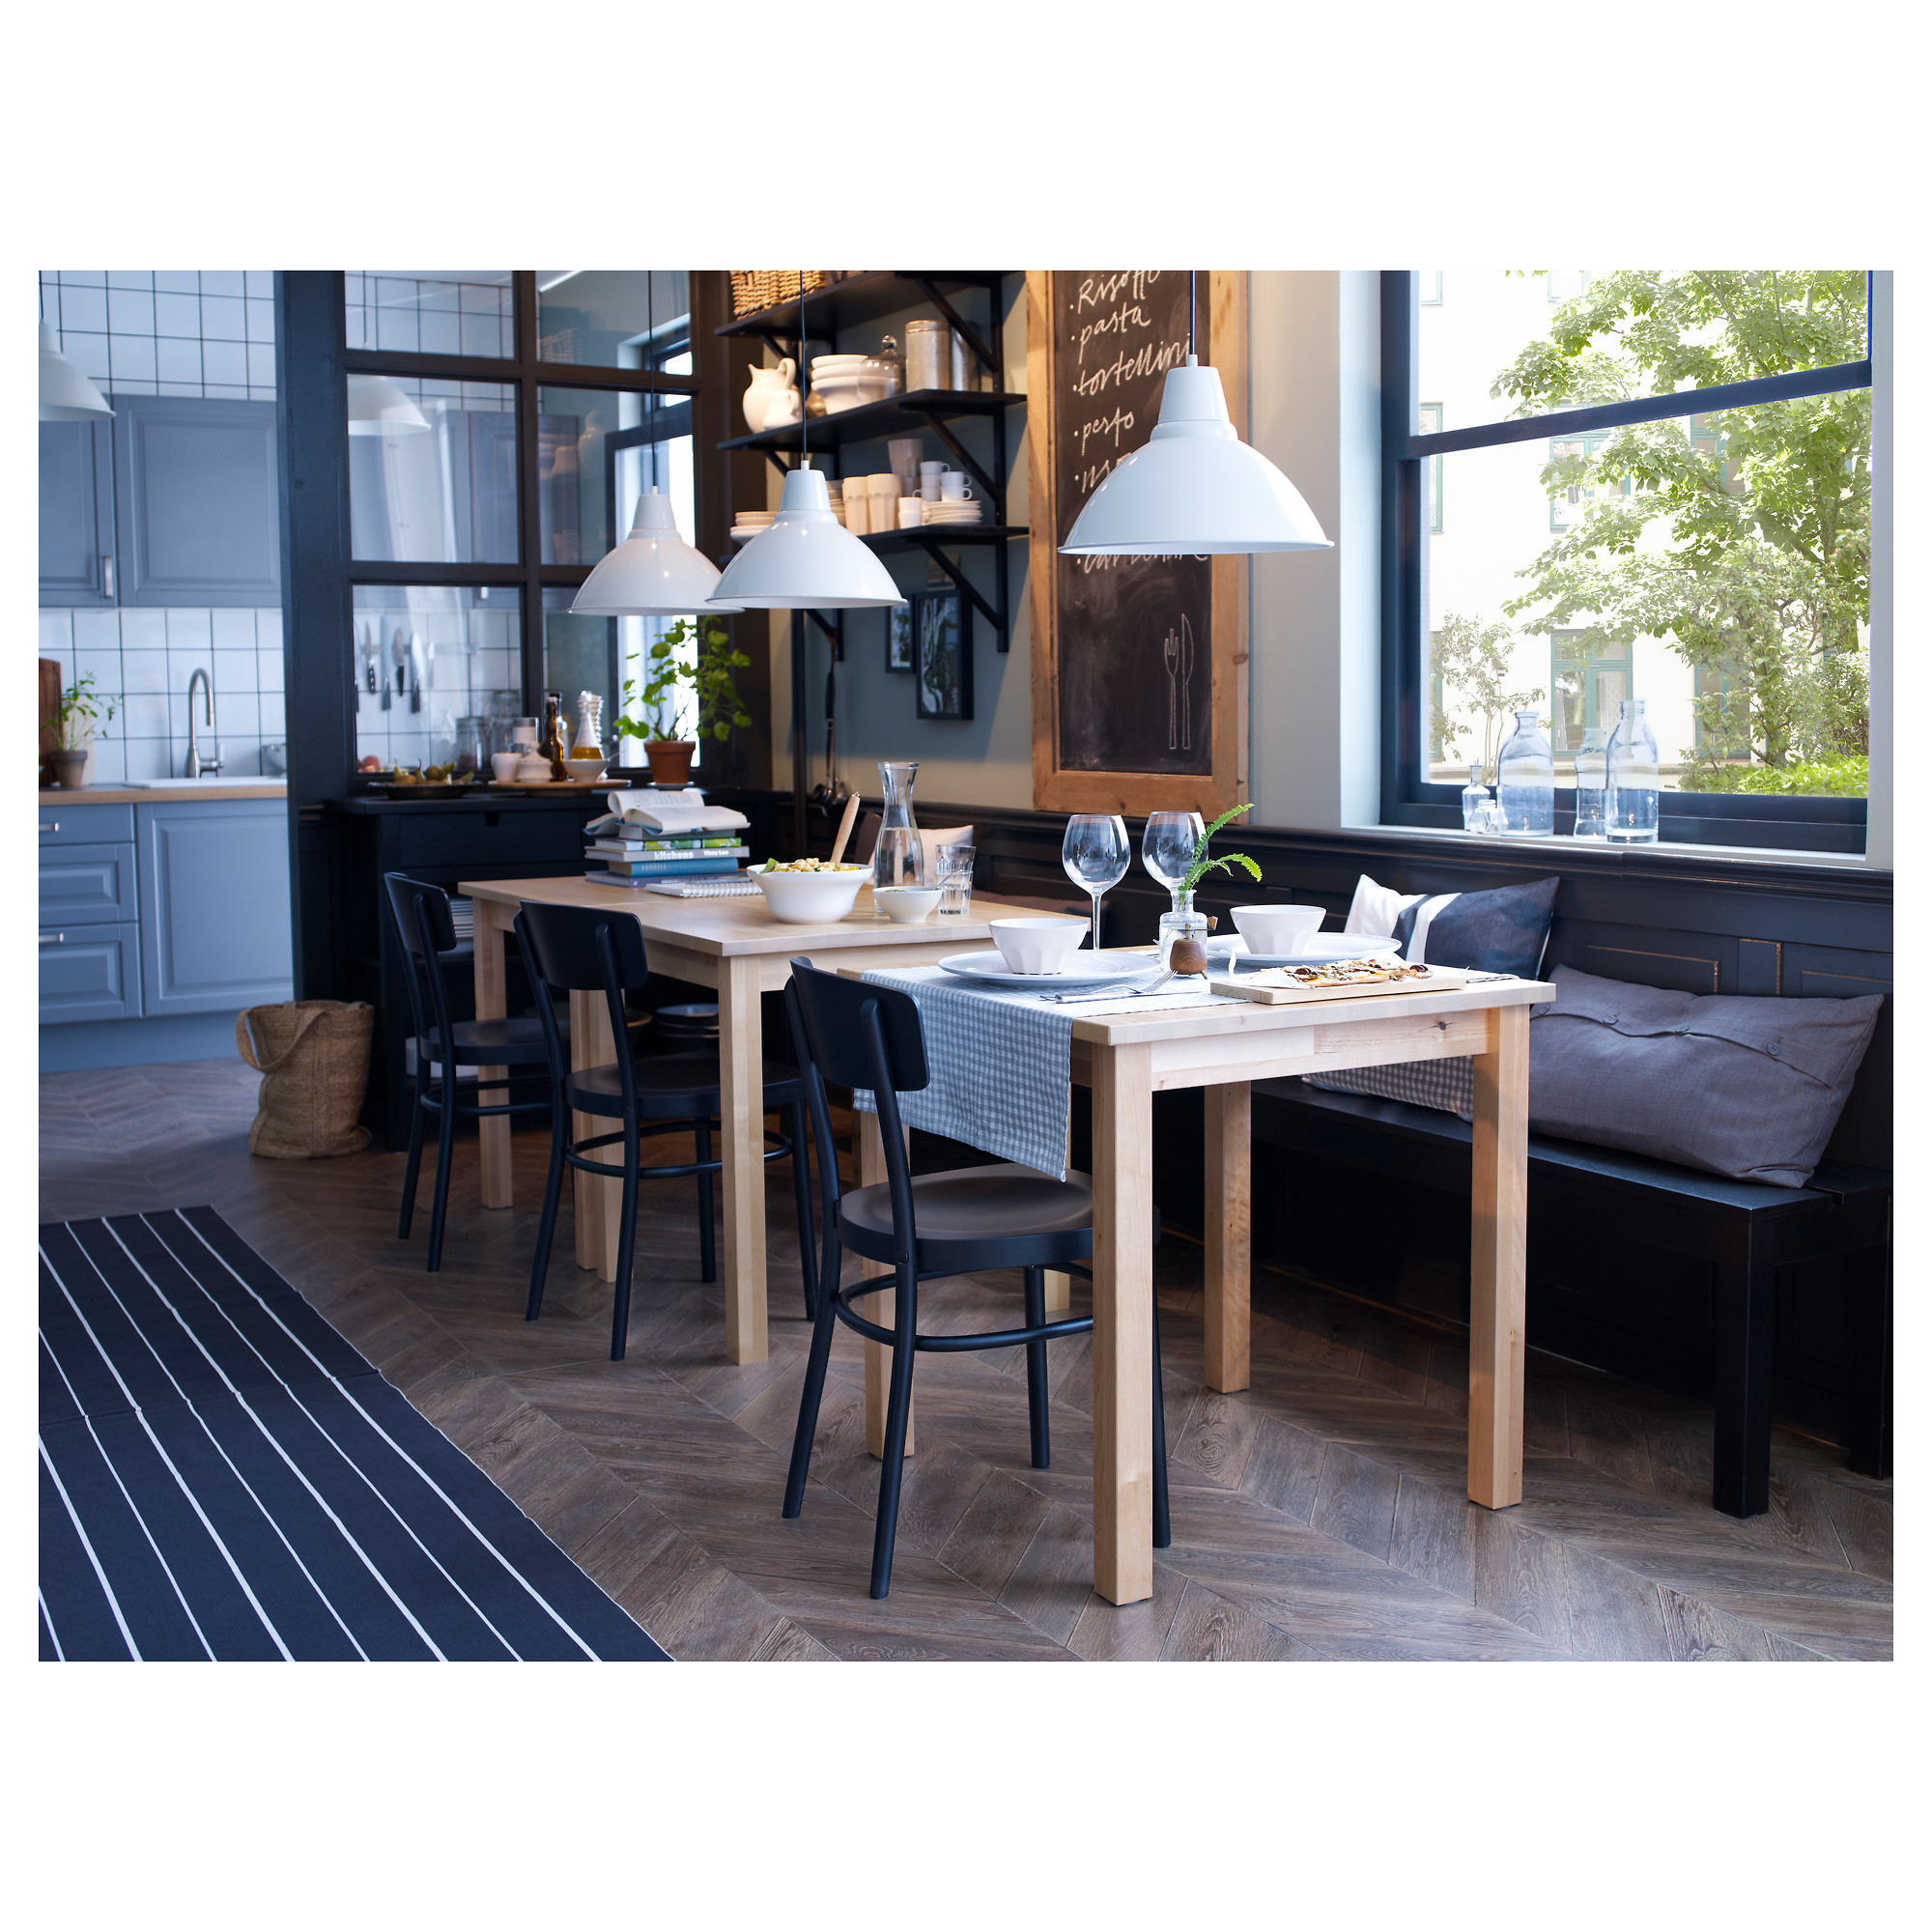 Dining Room Chairs Ikea Houses Interior Design